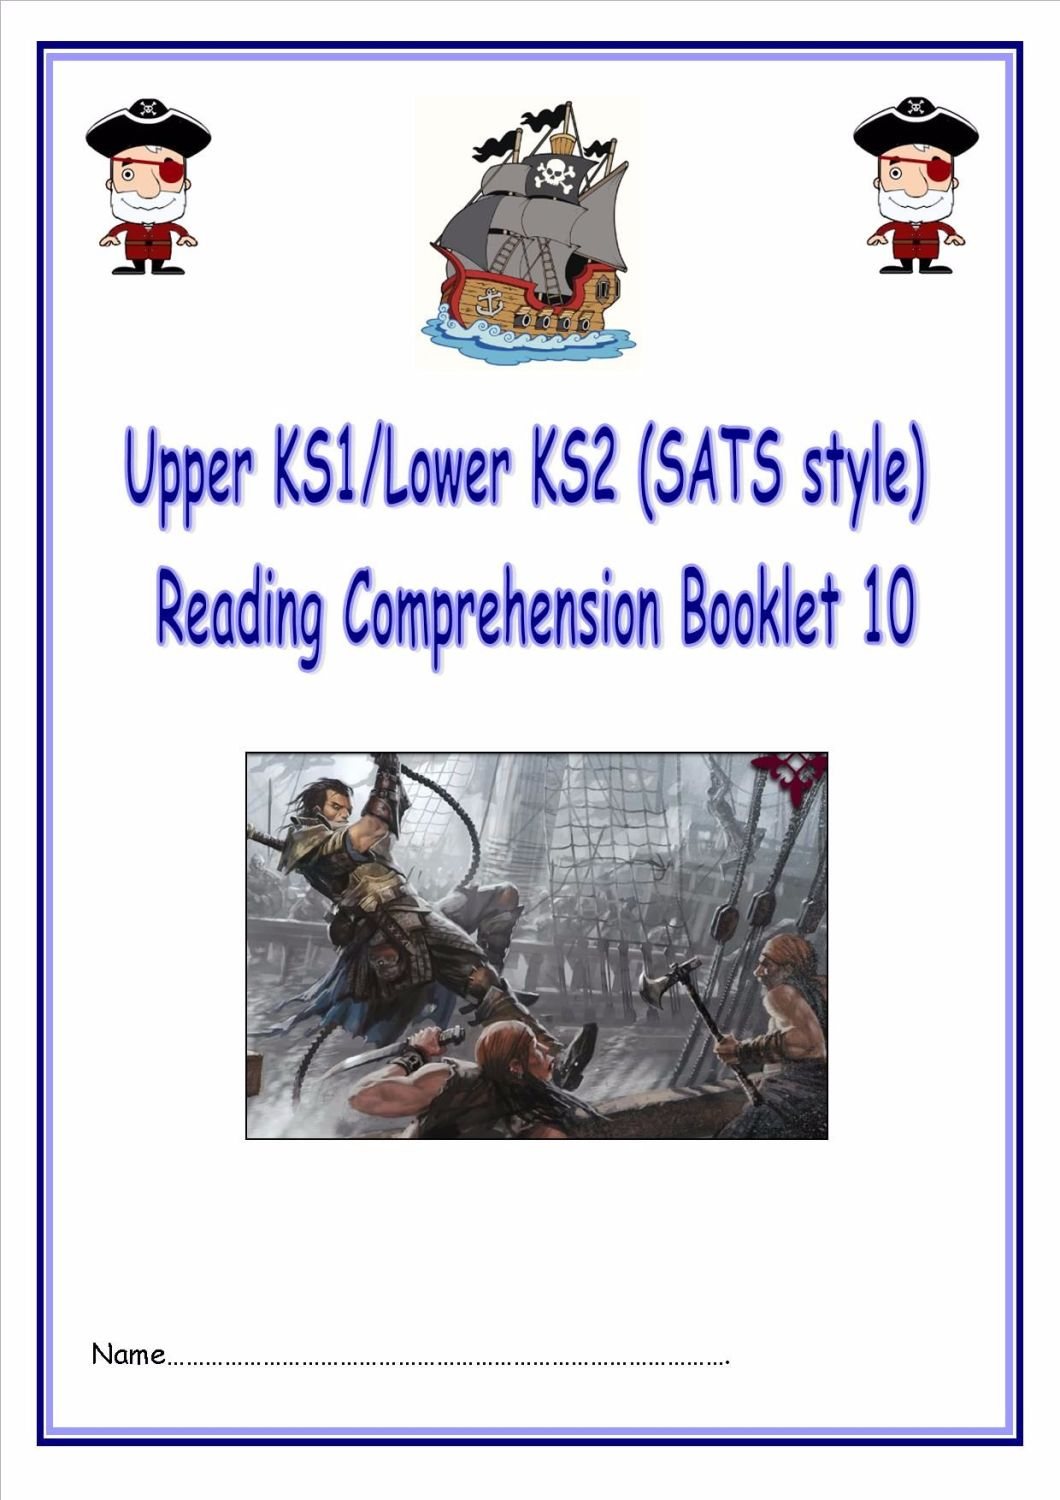 KS1/LKS2 SATs style reading comprehension booklet based on Easter.  Designe